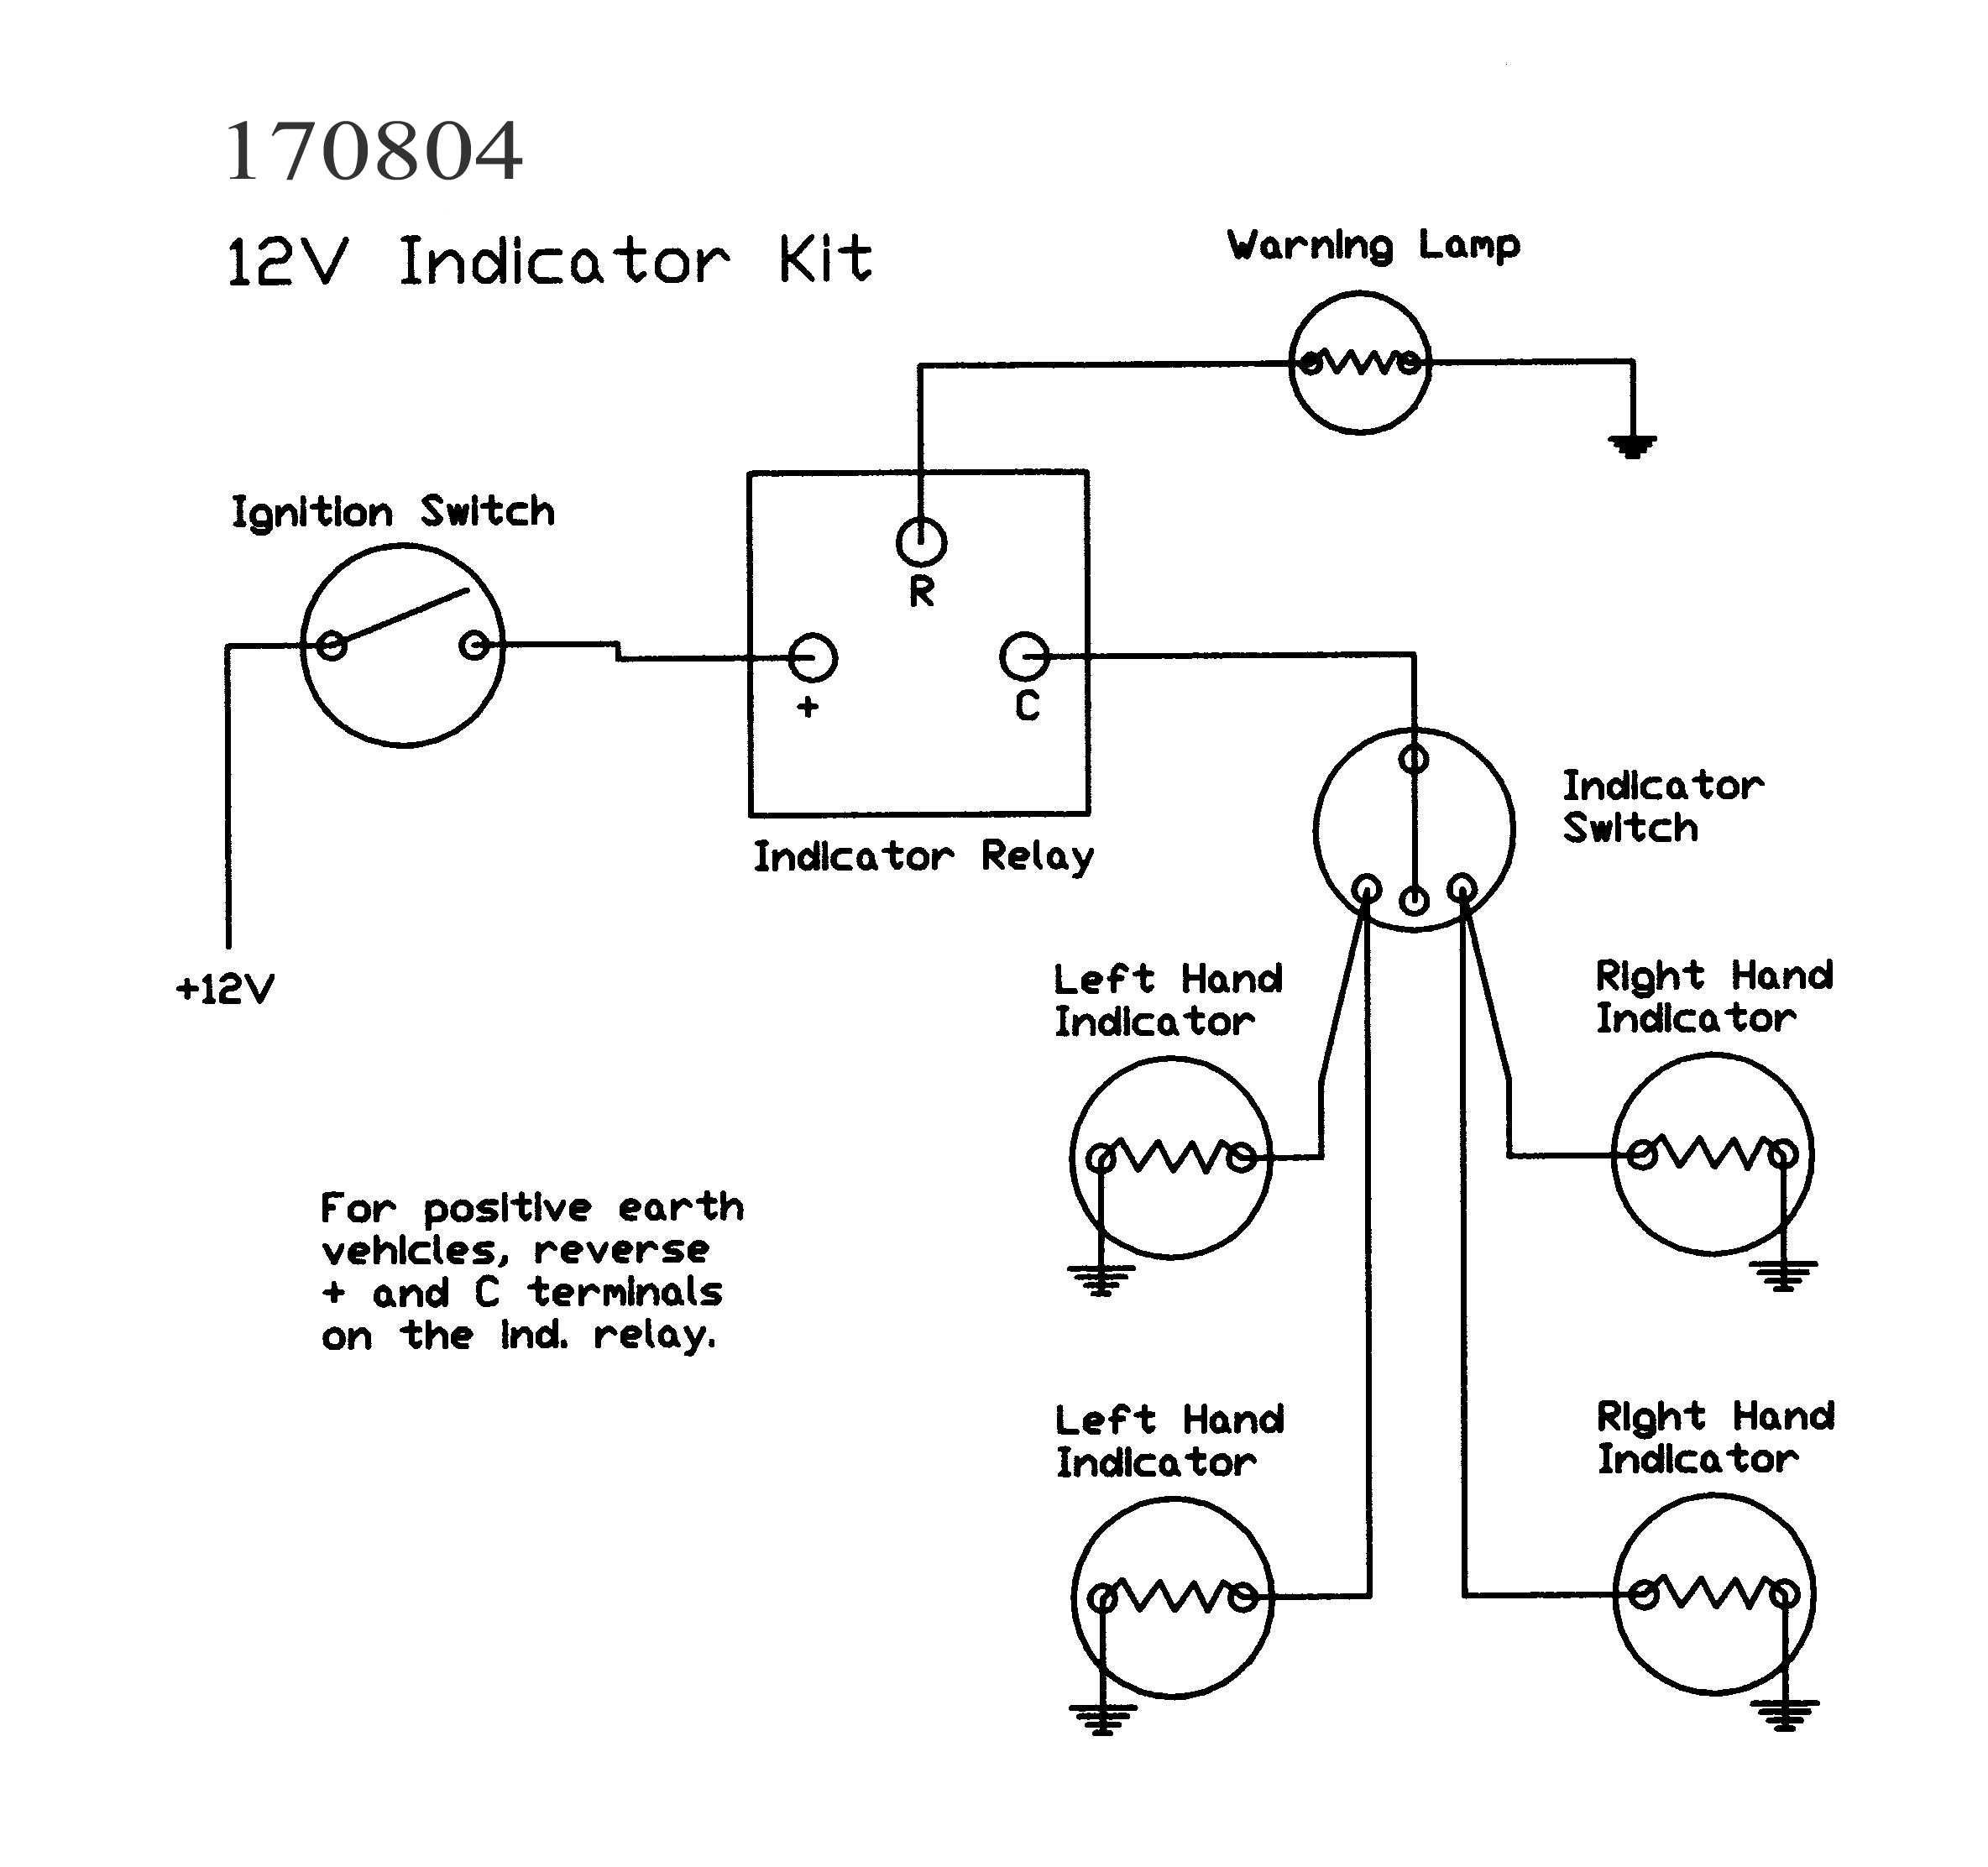 170804_(12v)_schematic indicator kits (without lamps) flasher wiring diagram 12v at gsmx.co